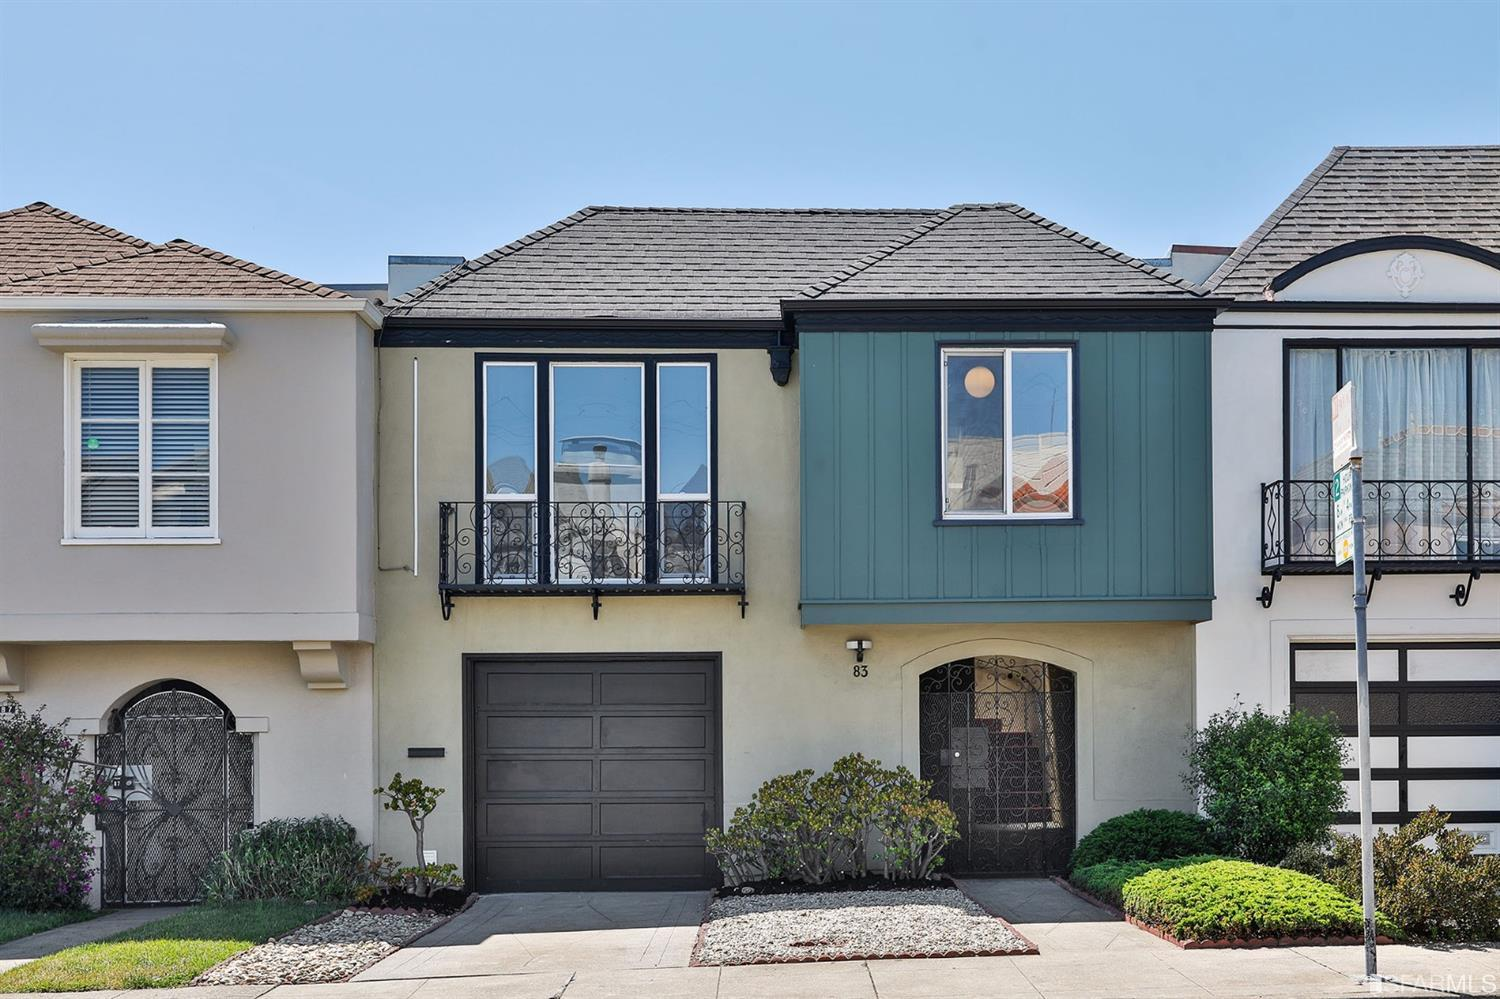 San Francisco Home Sold at 83 Forest View Drive by Alek Keytiyev Realtor